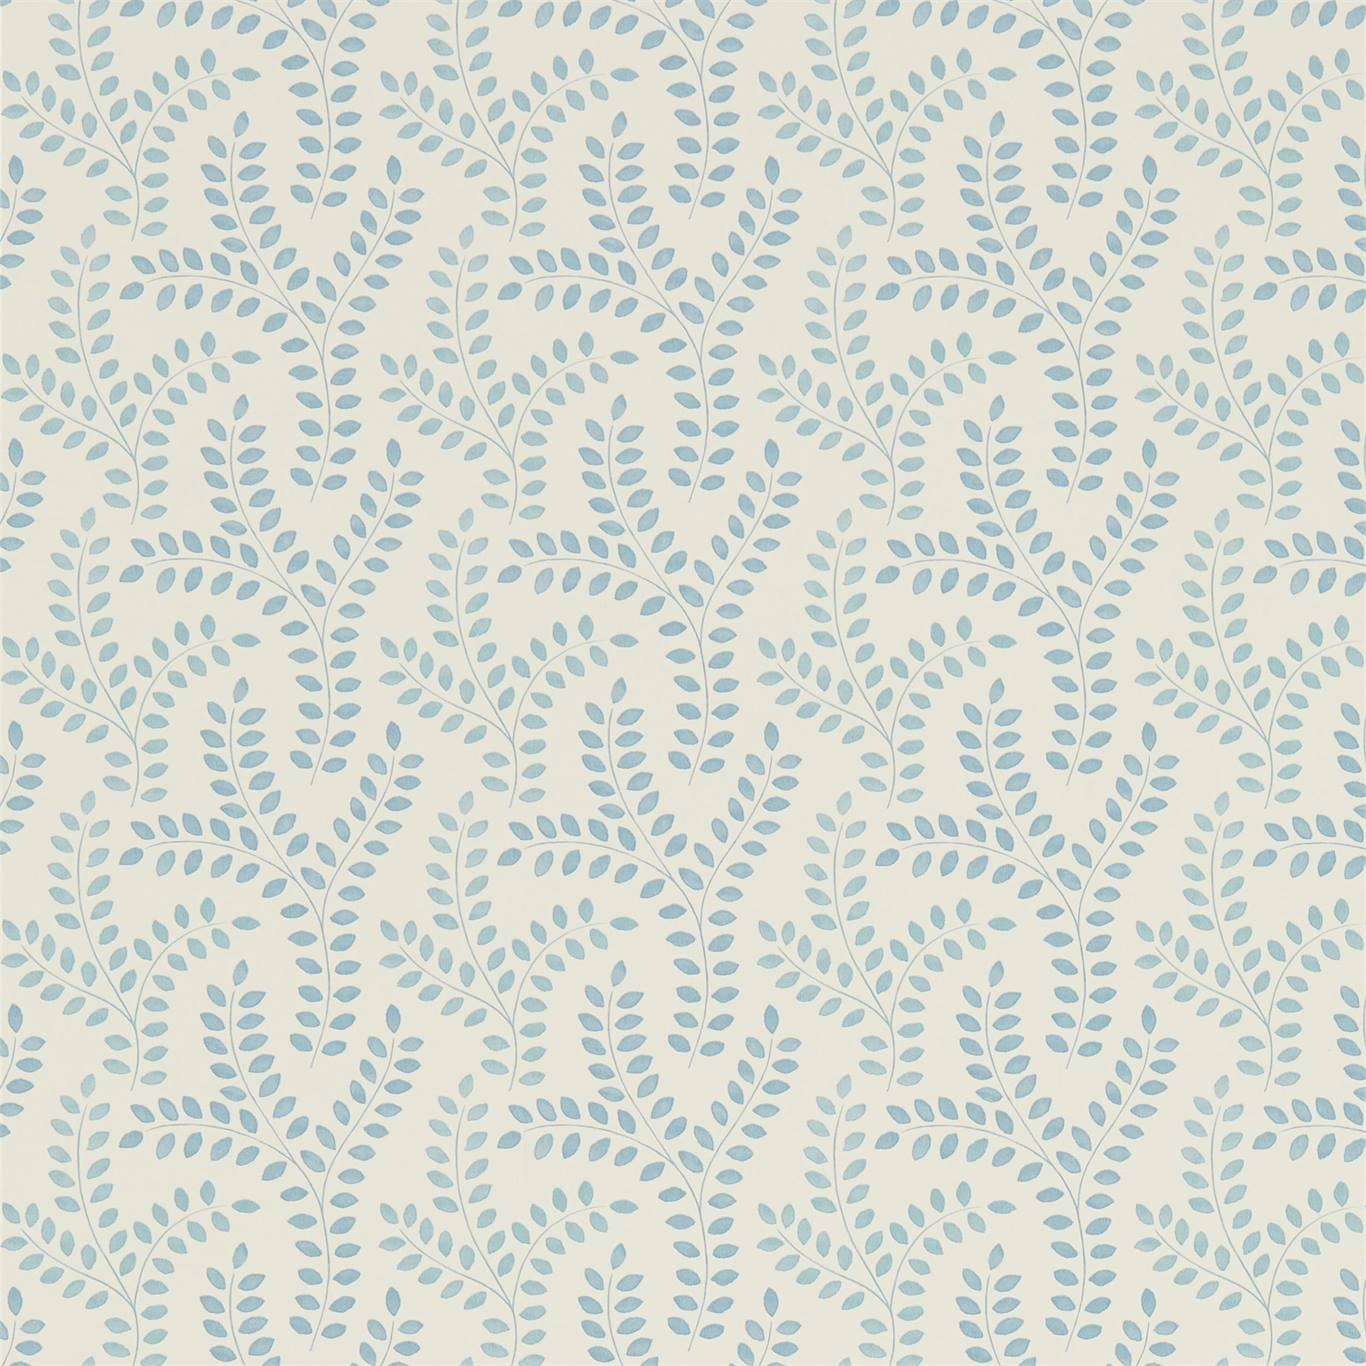 DLMW216886 Collection - Littlemore Wallpapers